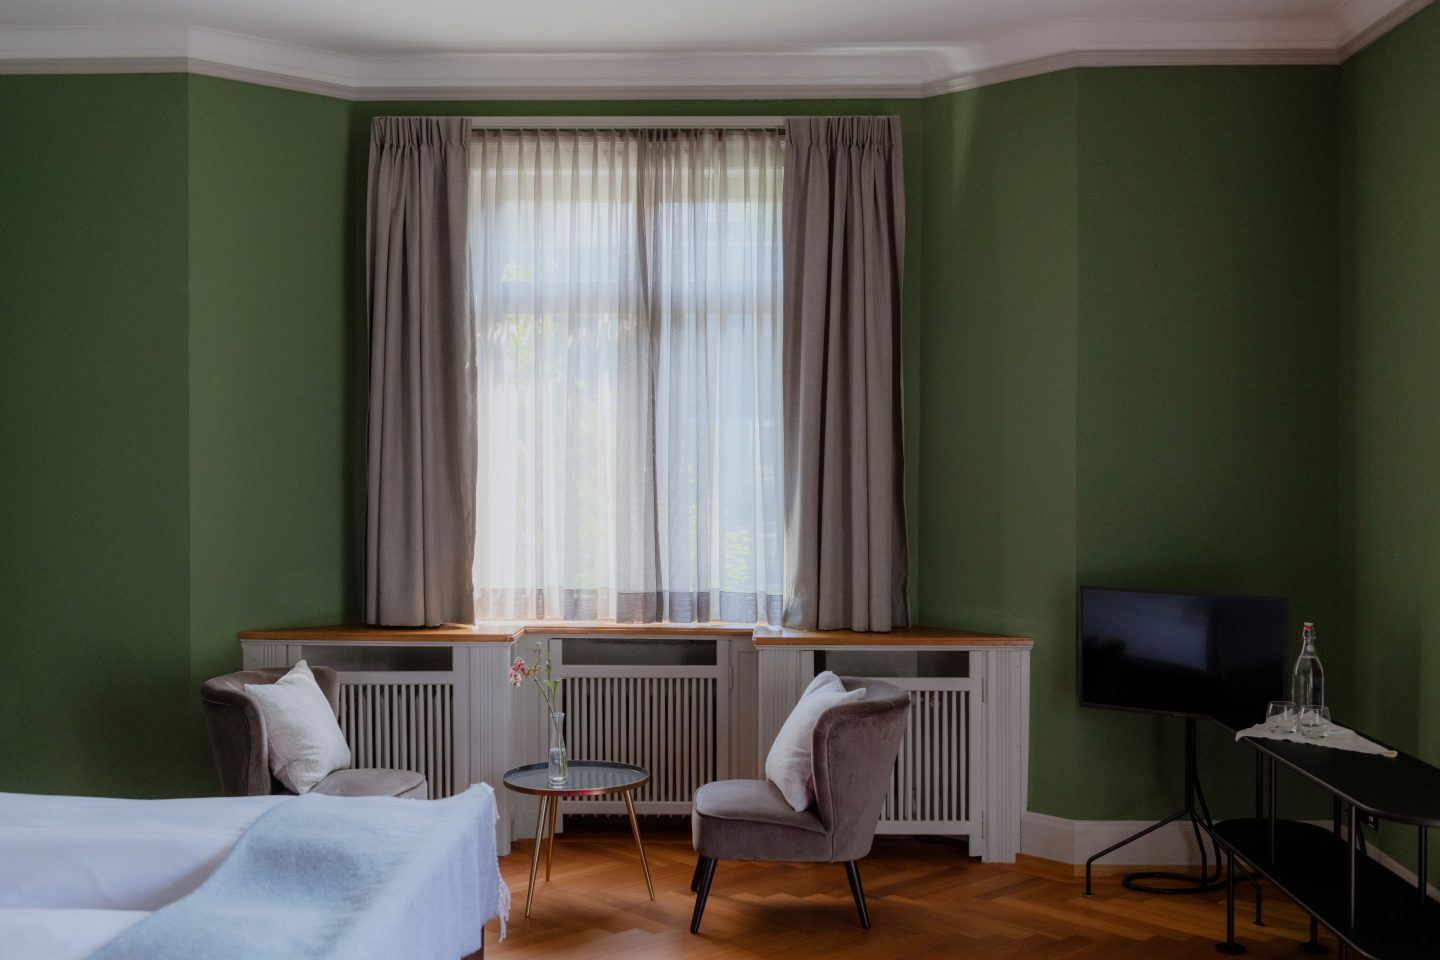 IGNANT-Travel-Zurich-Sleep-Signau-House-05